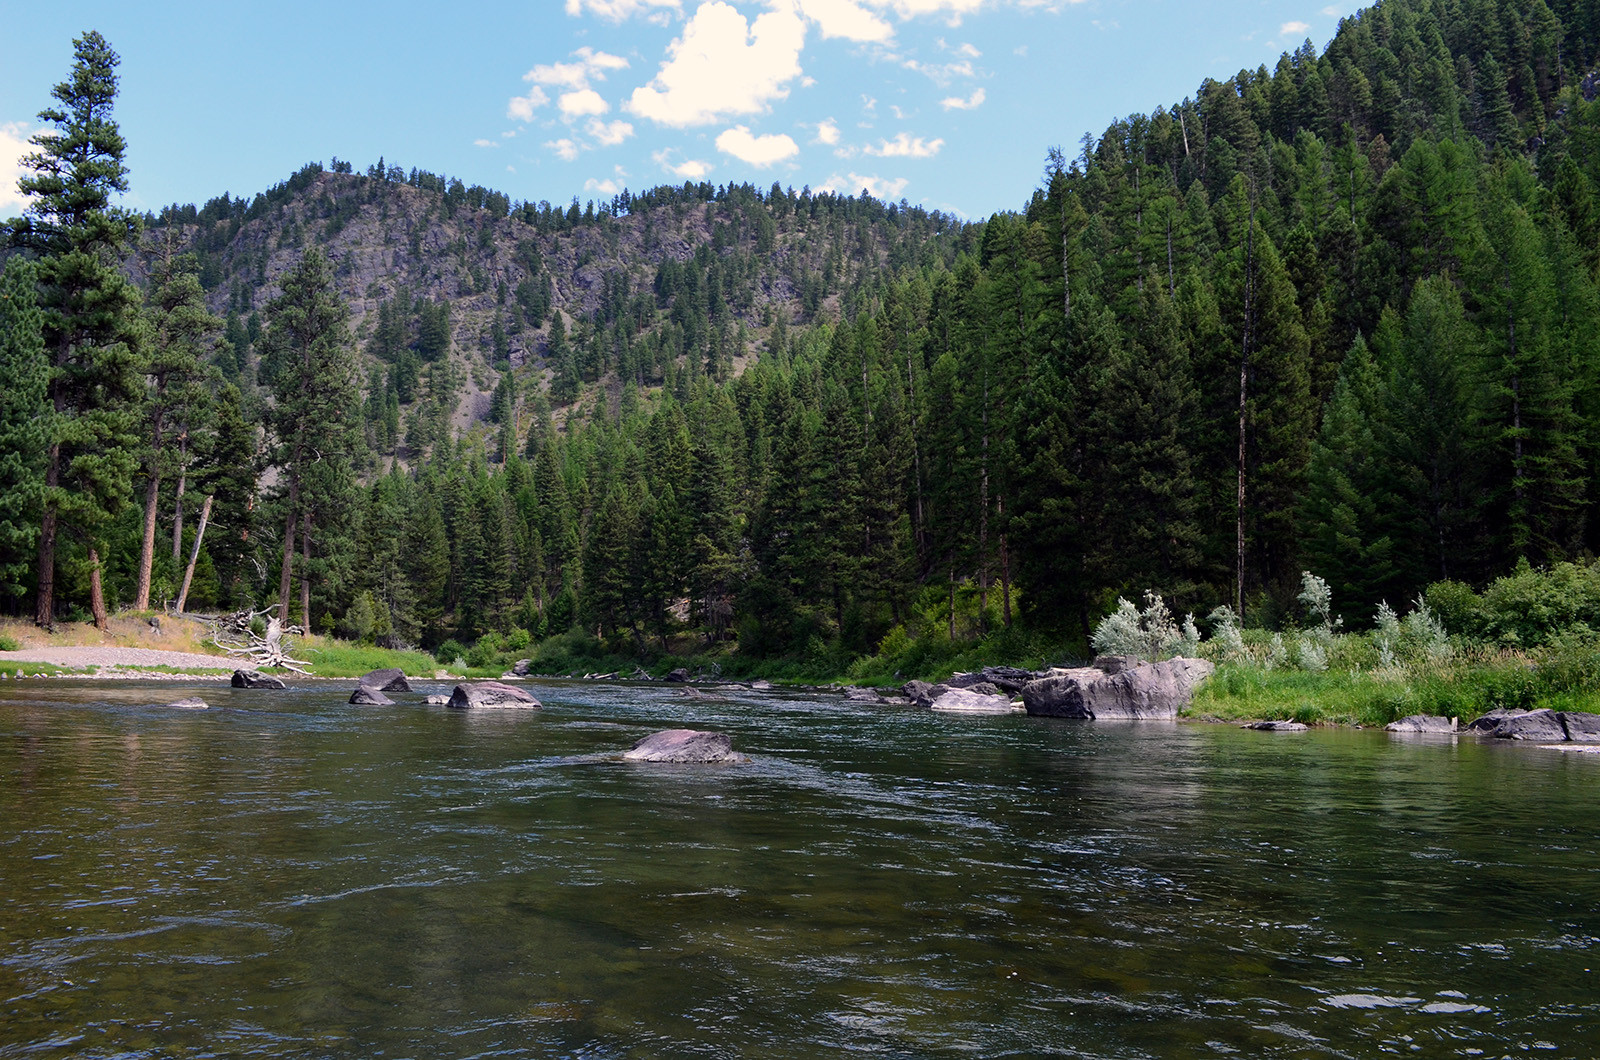 Wapiti Waters Fly Fishing Montana With Jack C. Mauer: Blackfoot River in western Montana